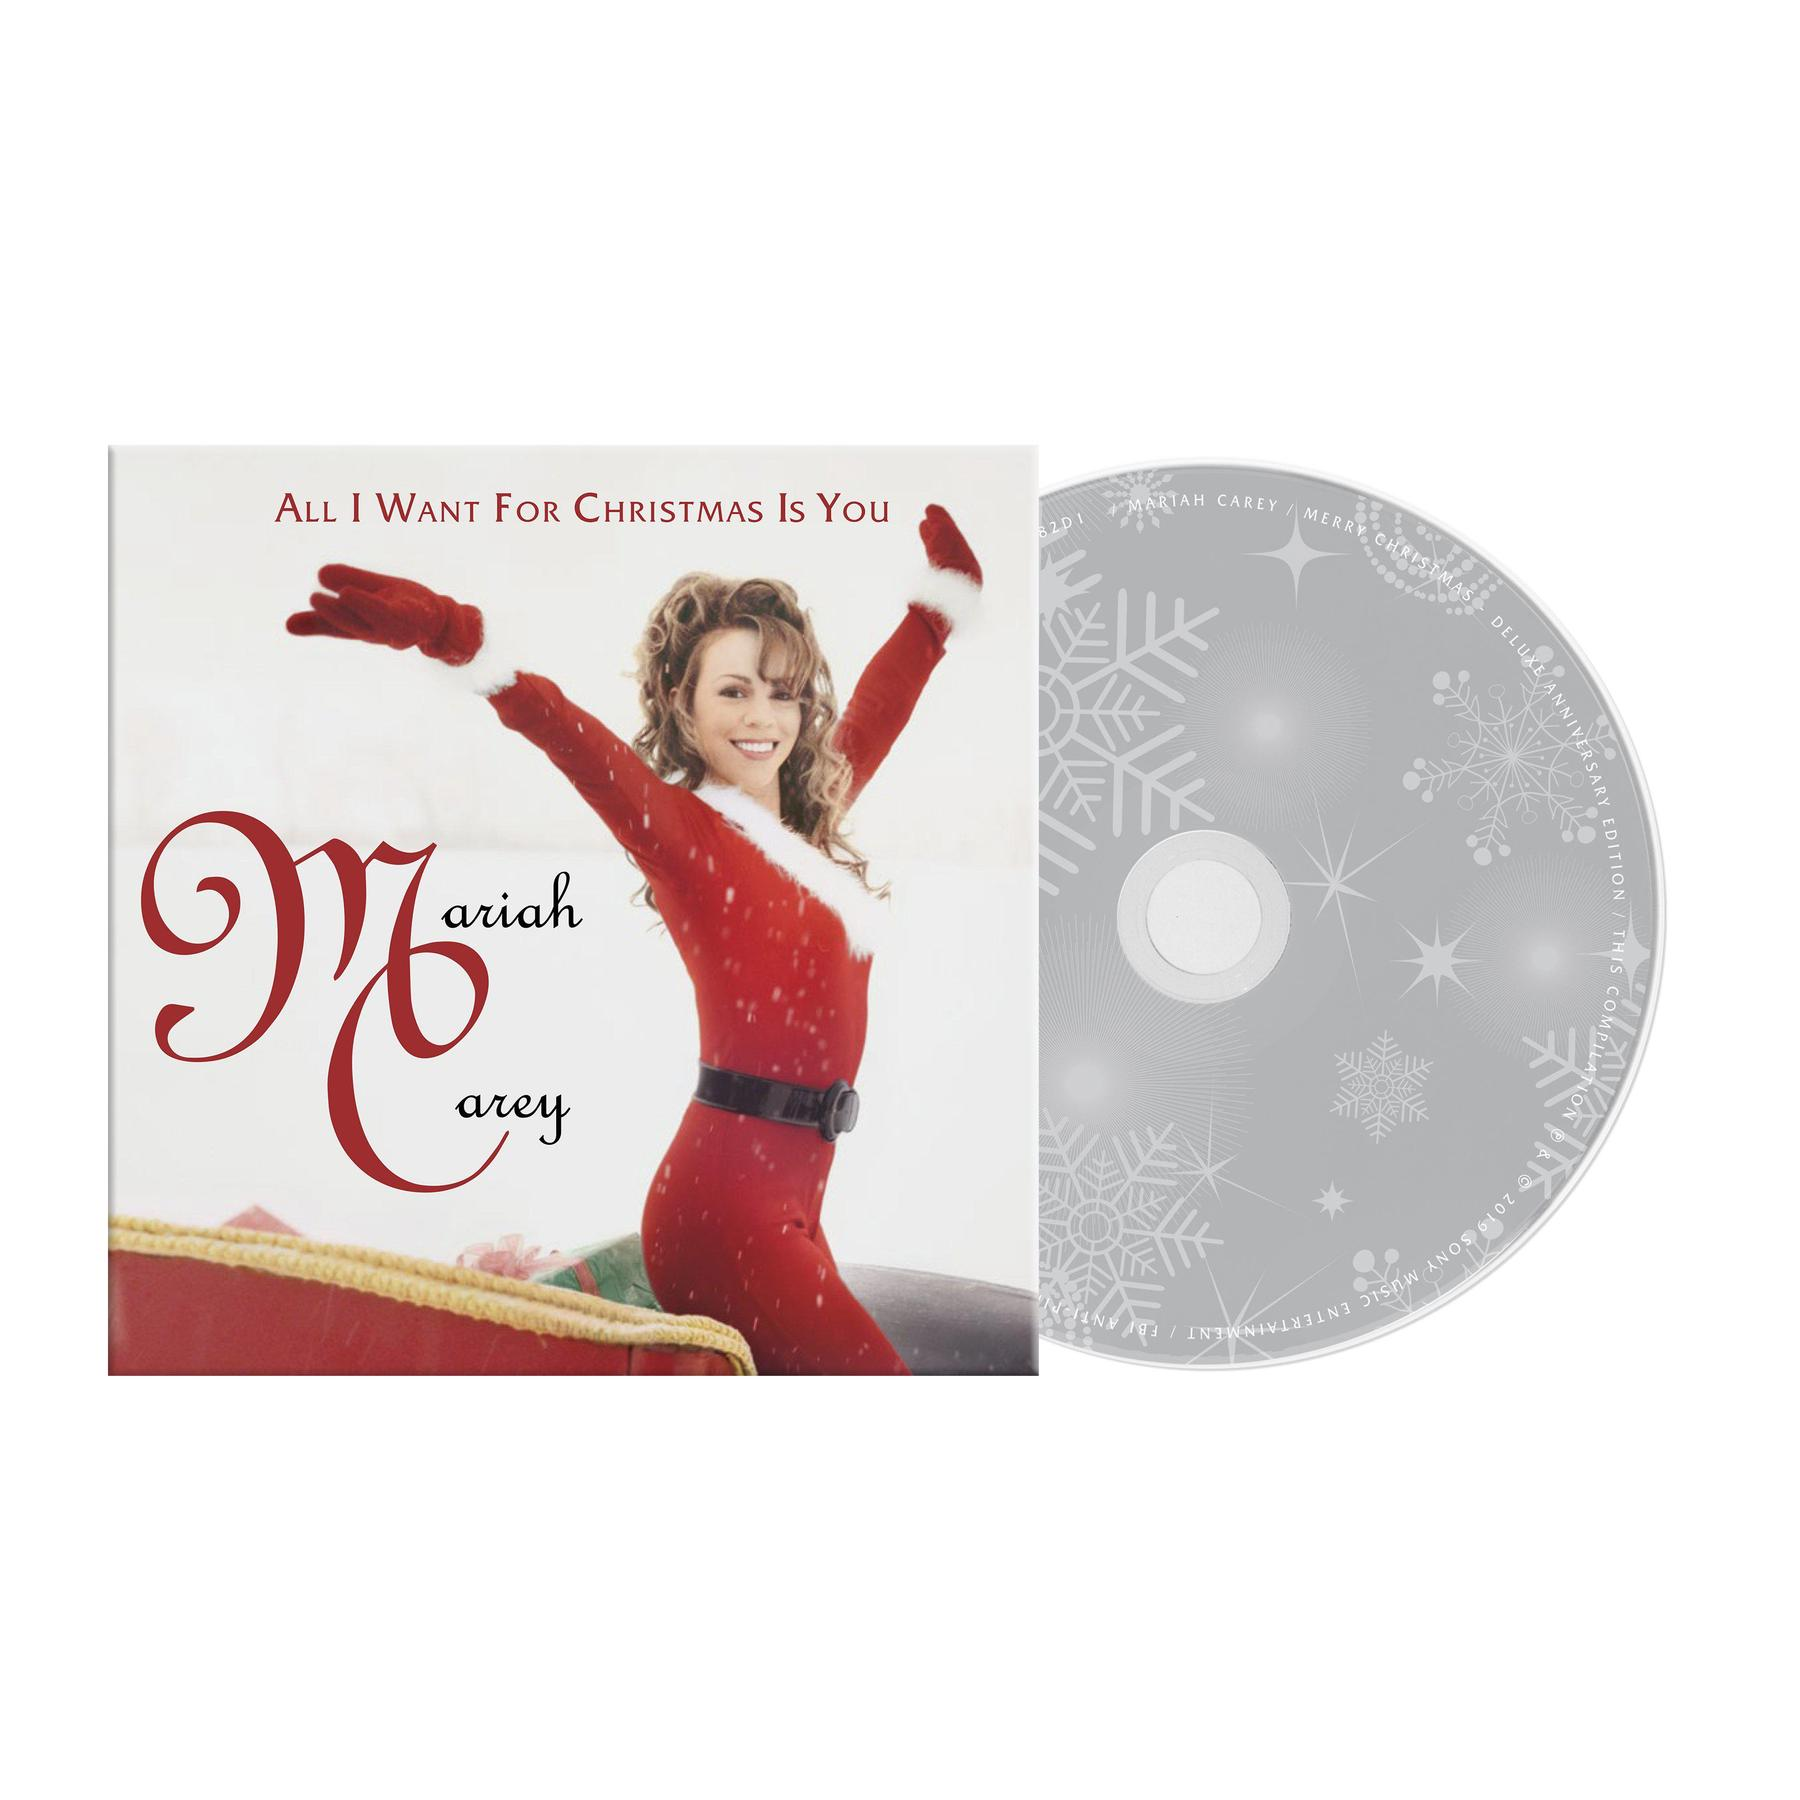 Mariah Carey - All I Want For Christmas Is You [Limited Edition CD Single]